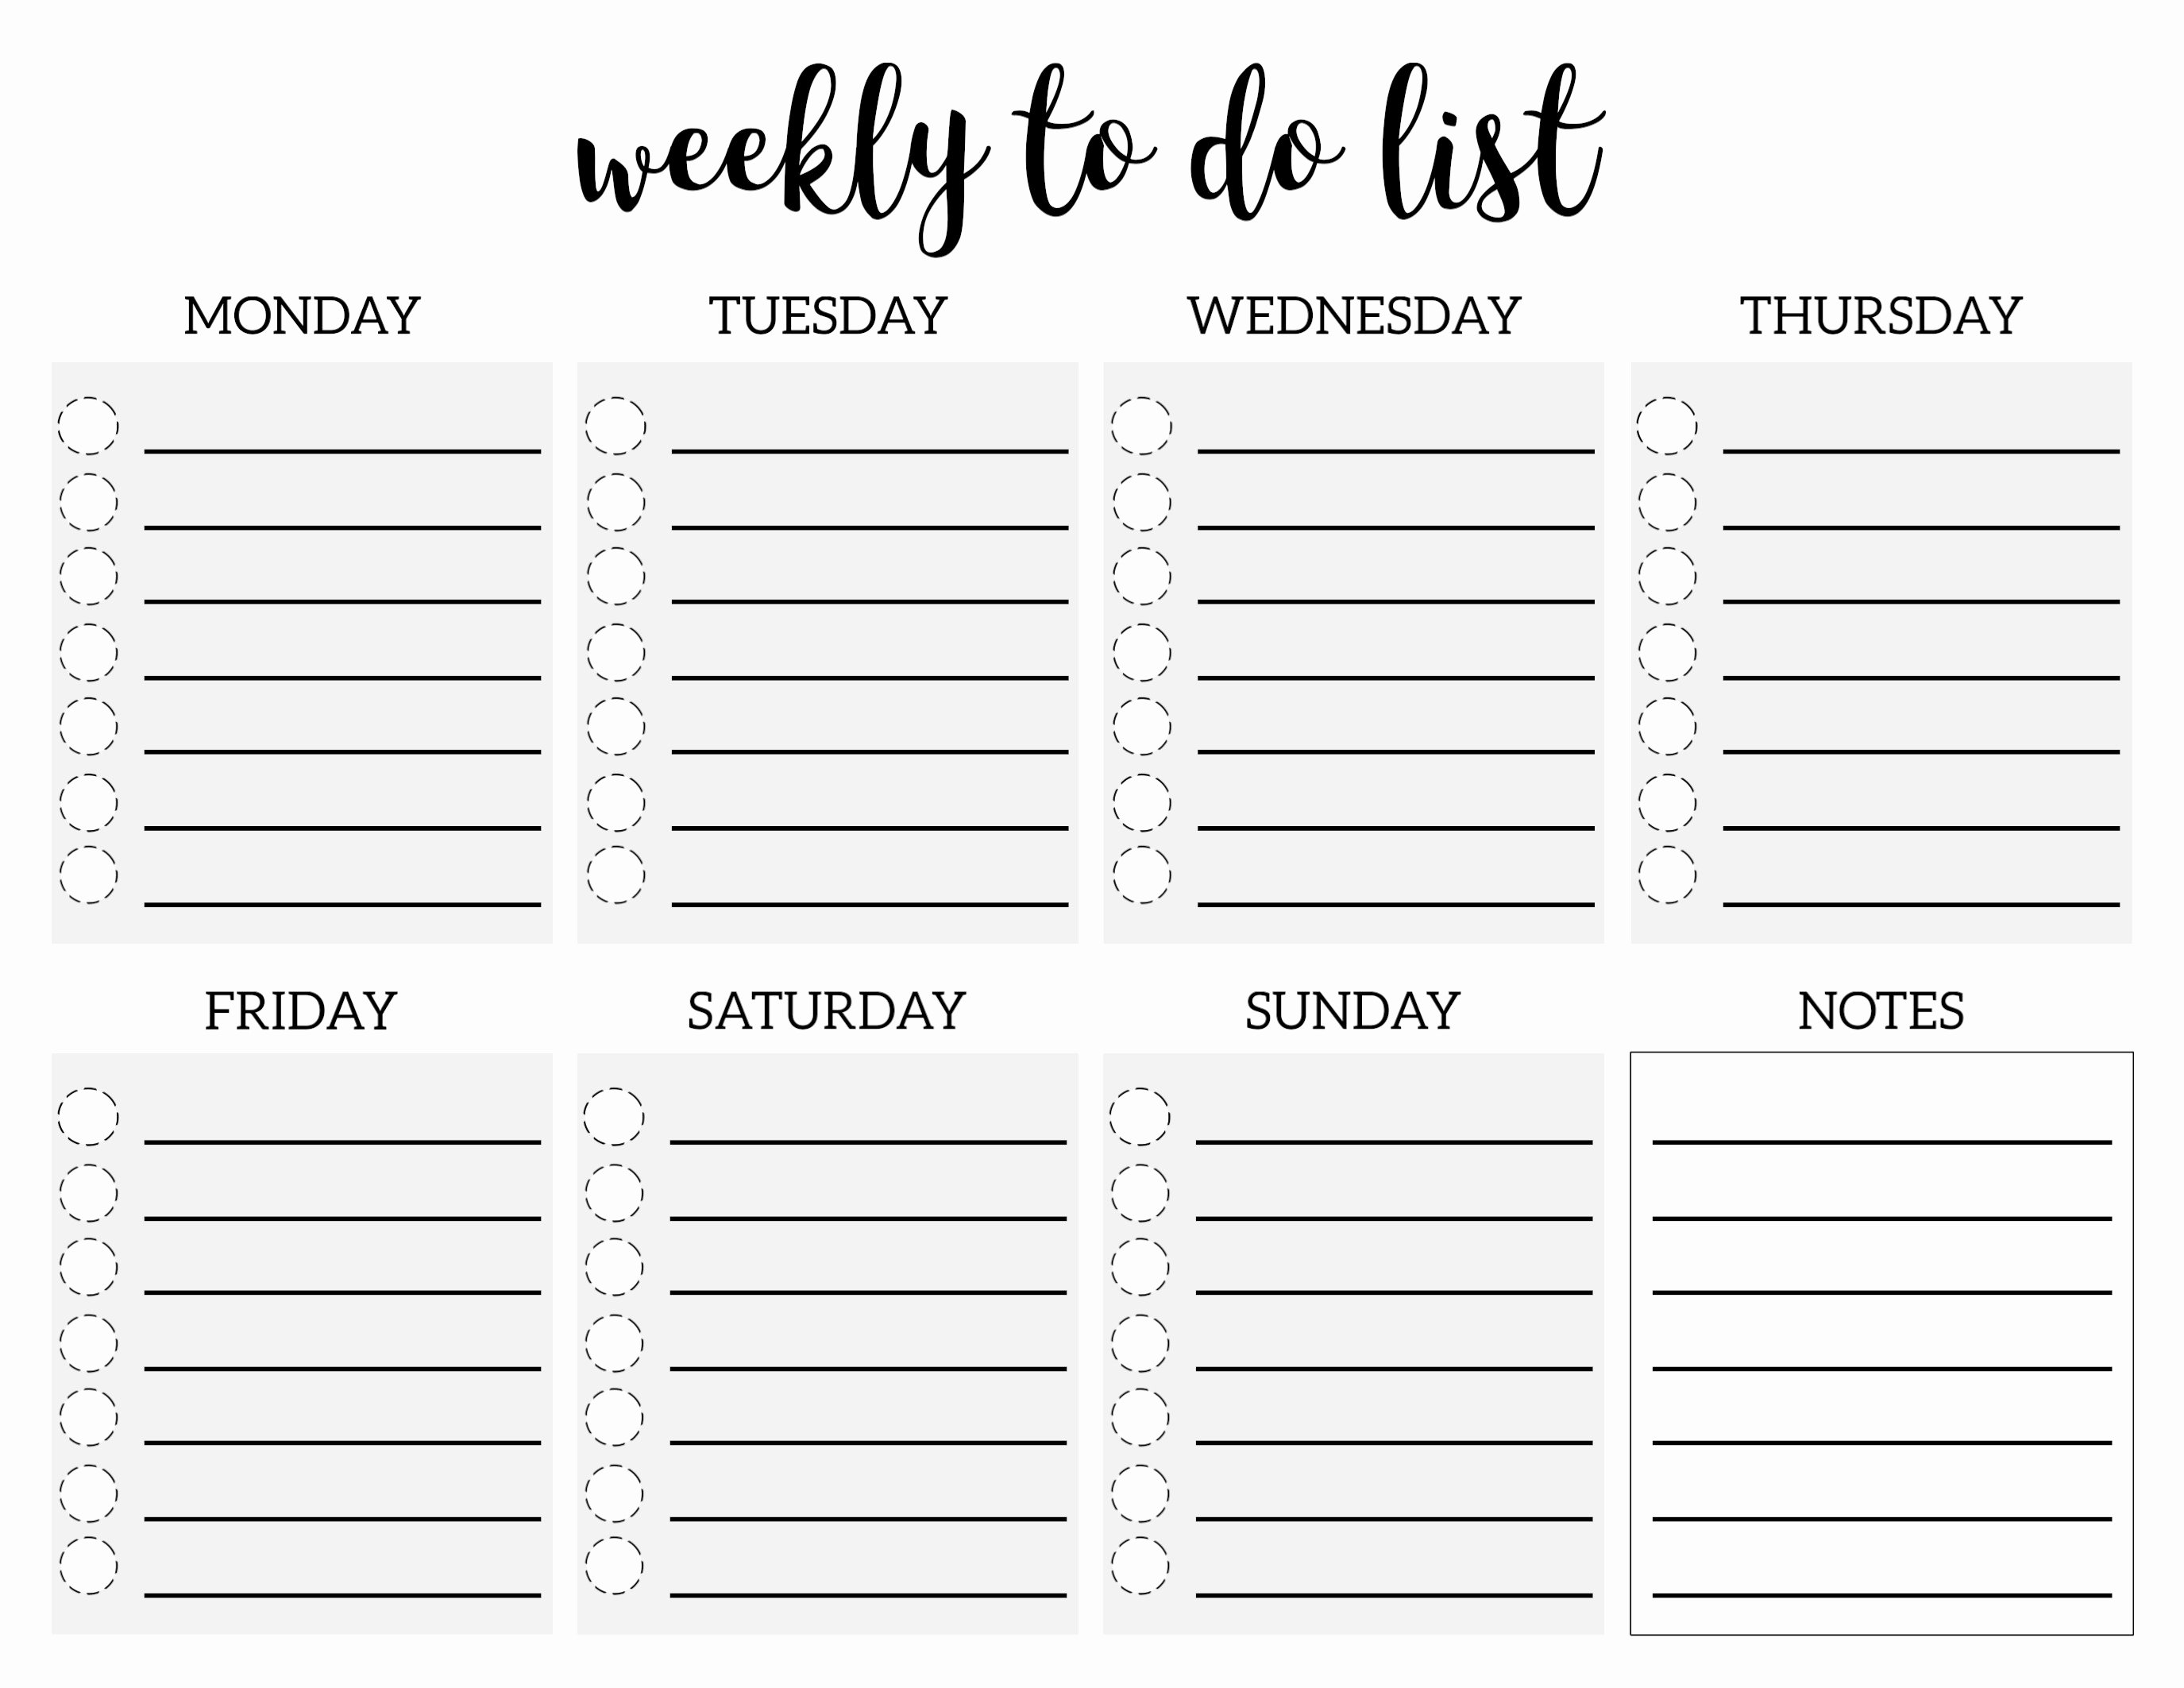 Monthly to Do List Template Lovely Weekly to Do List Printable Checklist Template Paper